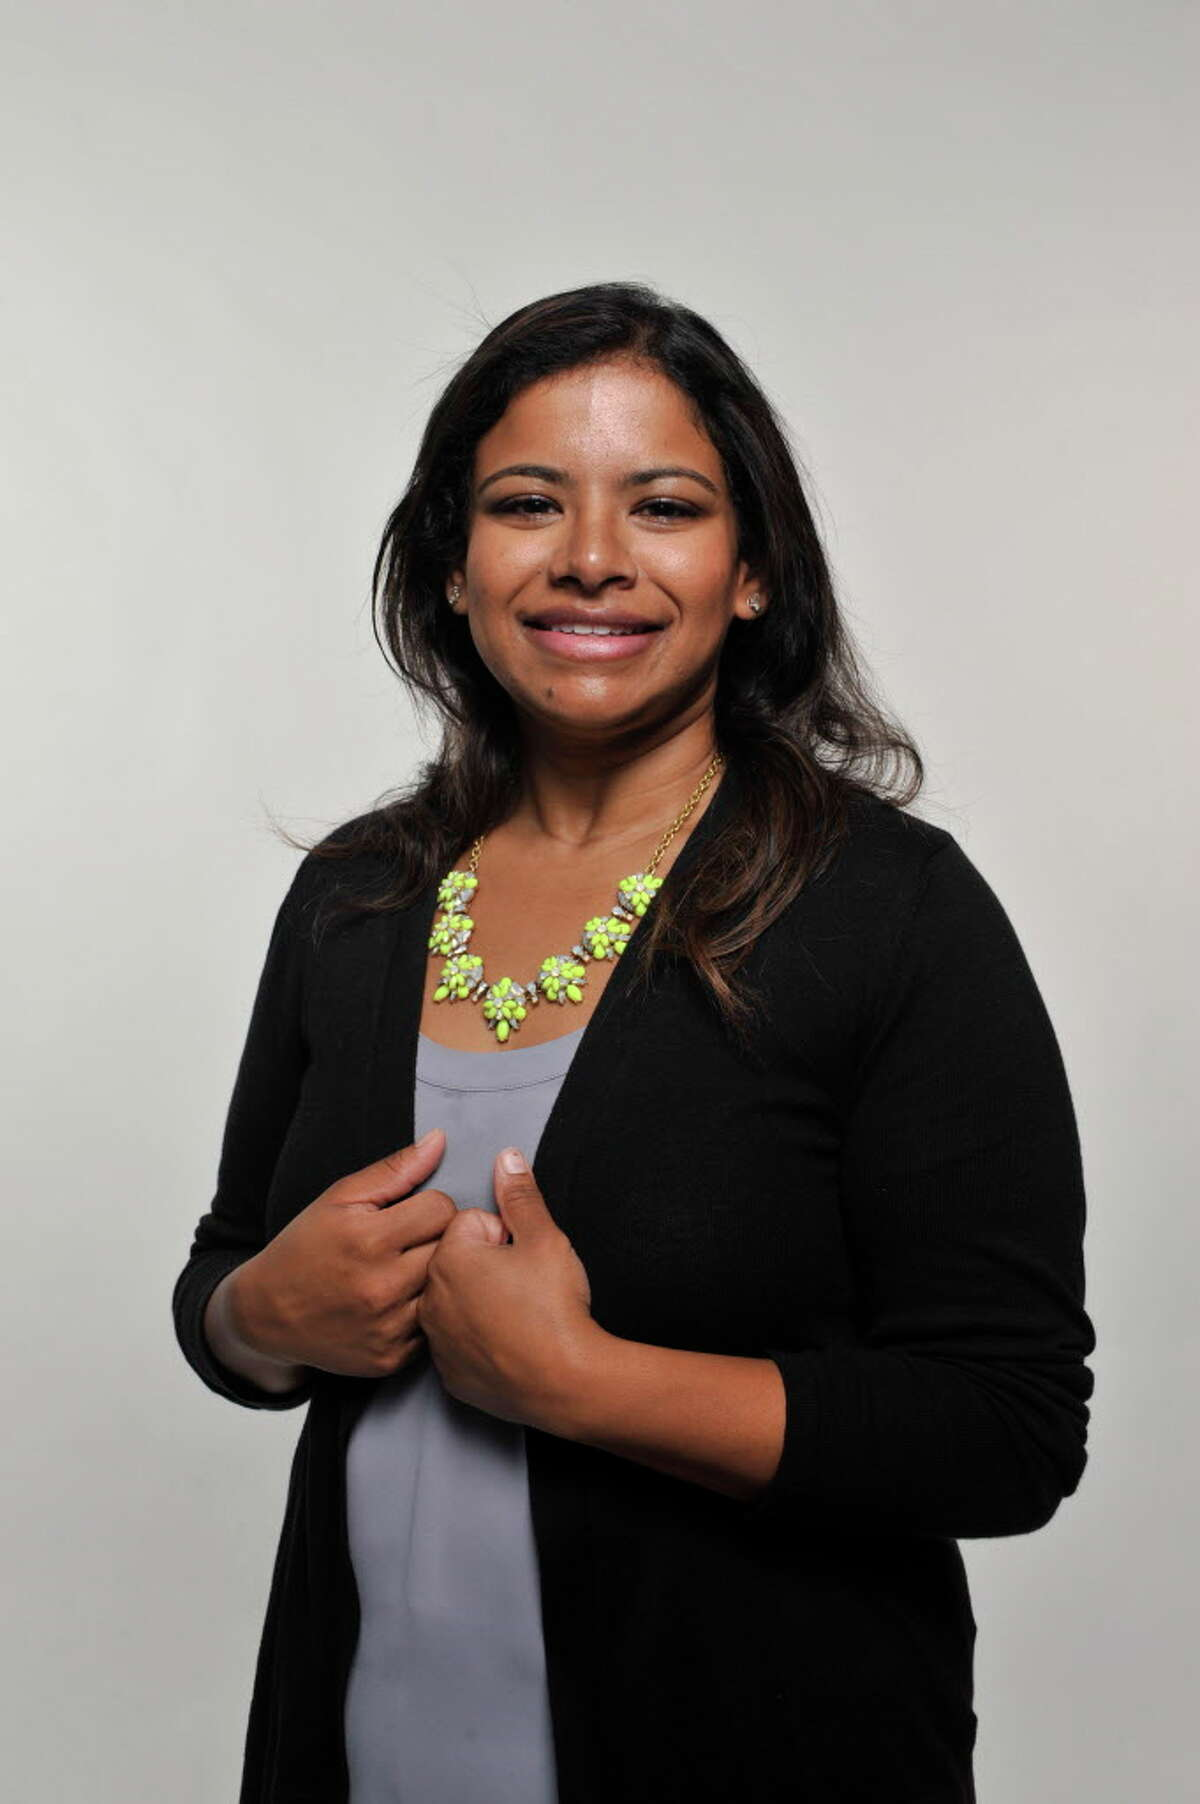 """Guilderland School Board member Seema Rivera: """"A lot of women, mostly moms, feel like they can come and talk to me about different concerns they have. They're comfortable asking questions and telling me their opinions."""""""